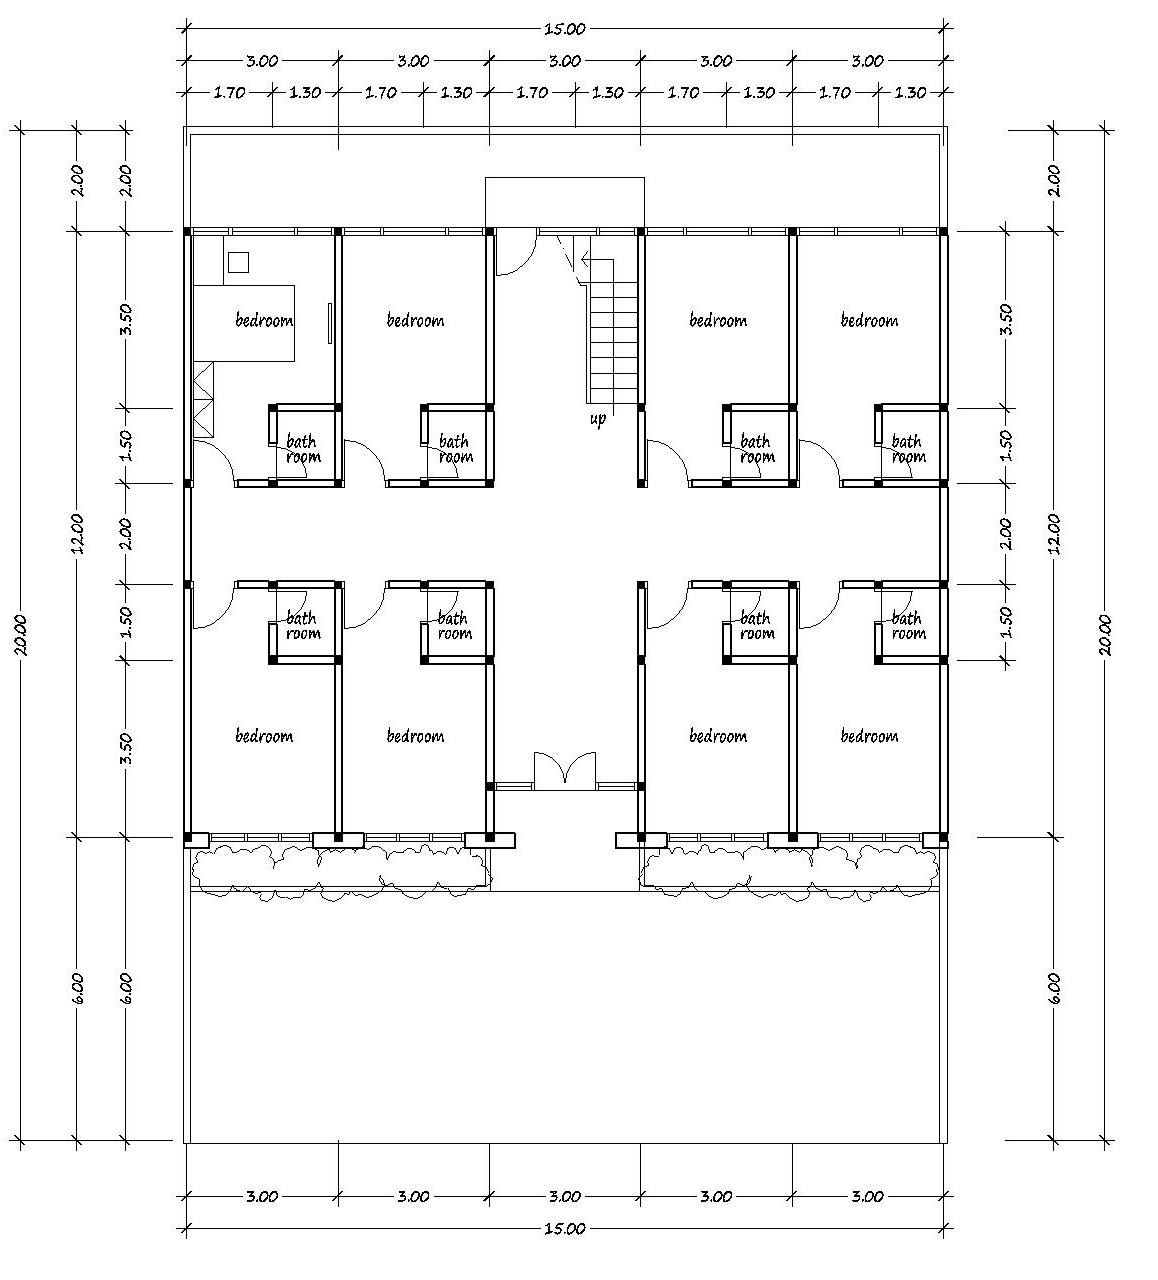 house plans for you - plans, image, design and about house